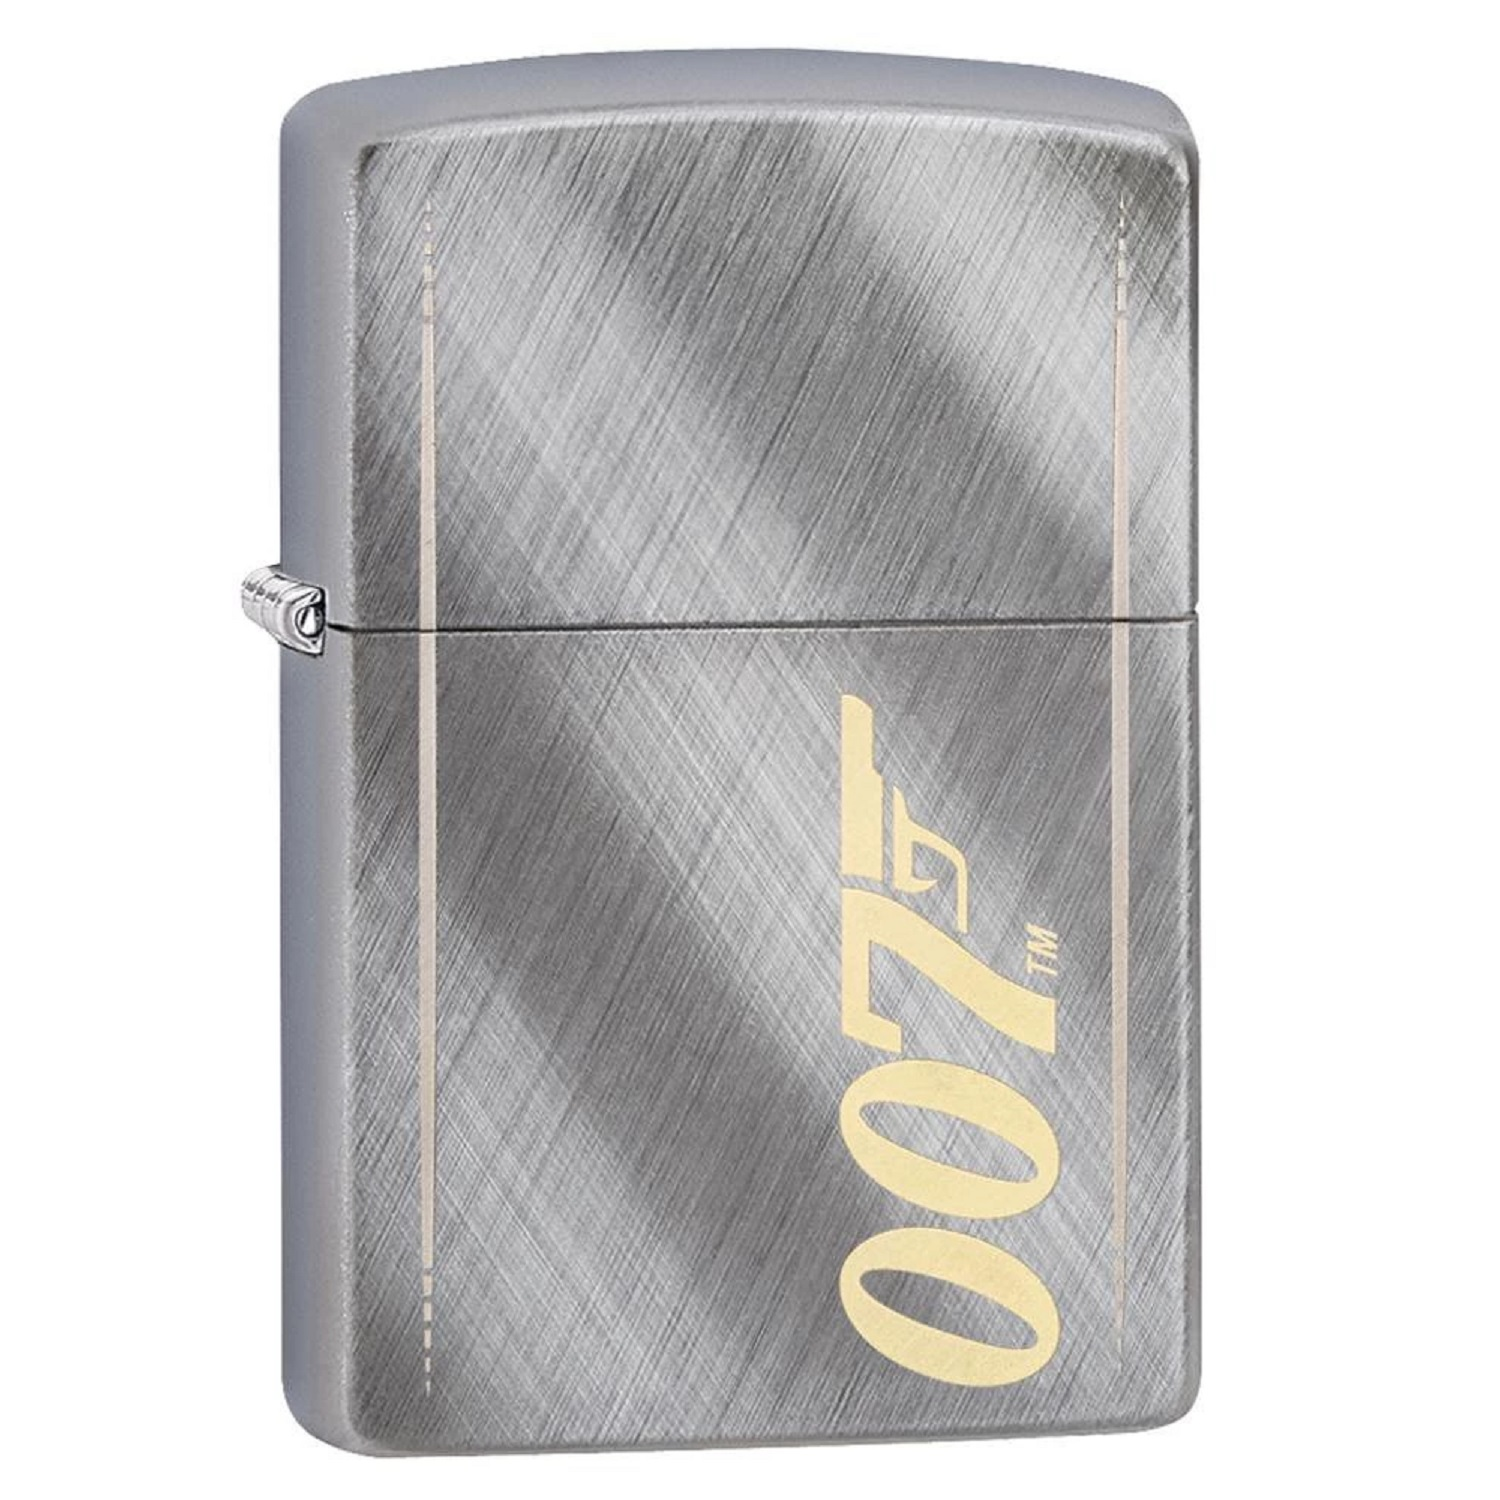 Zippo Brushed Chrome James Bond 007 Lighter